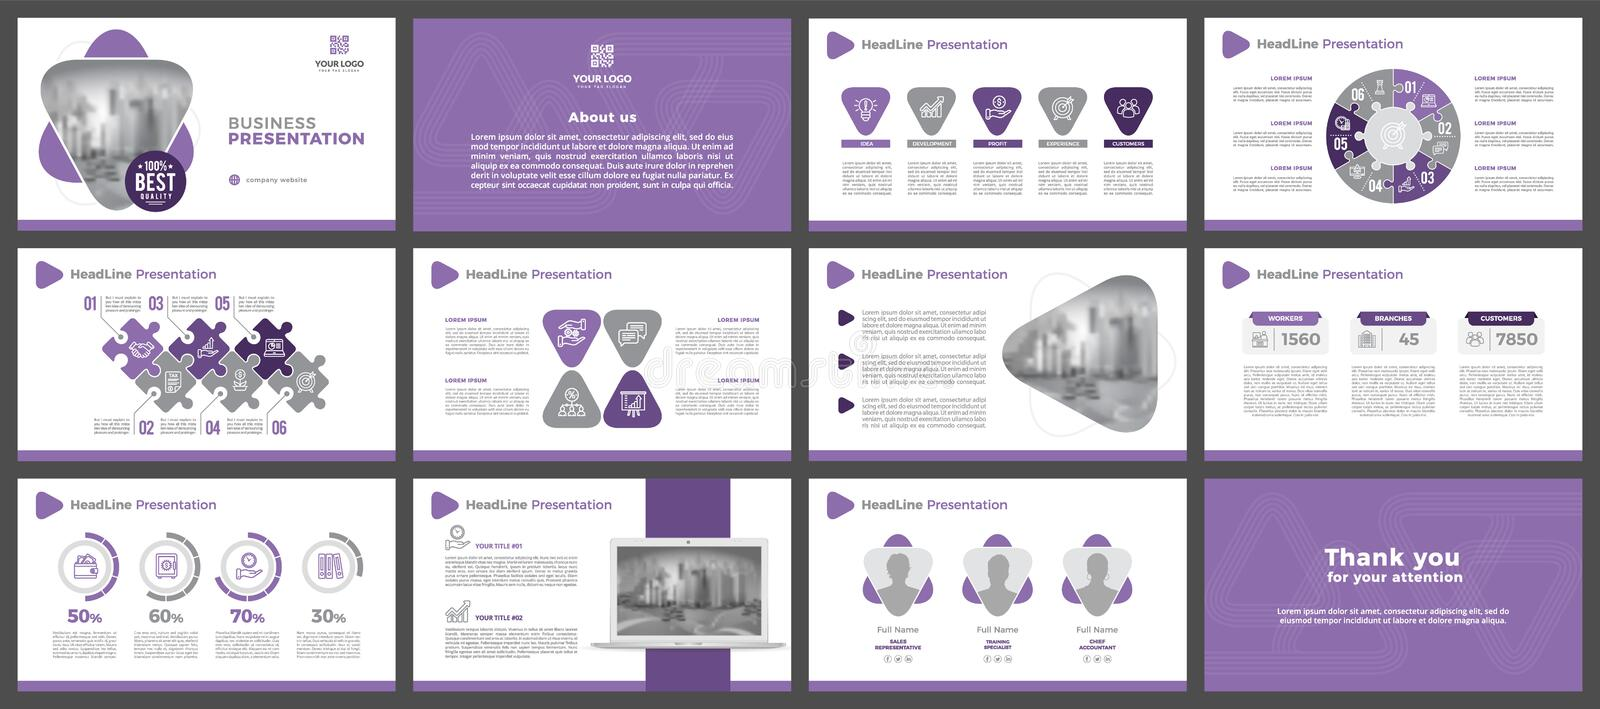 Power Point presentation template. Elements of infographics for presentation templates. Lavender version. Presentation templates, corporate. Elements of vector illustration